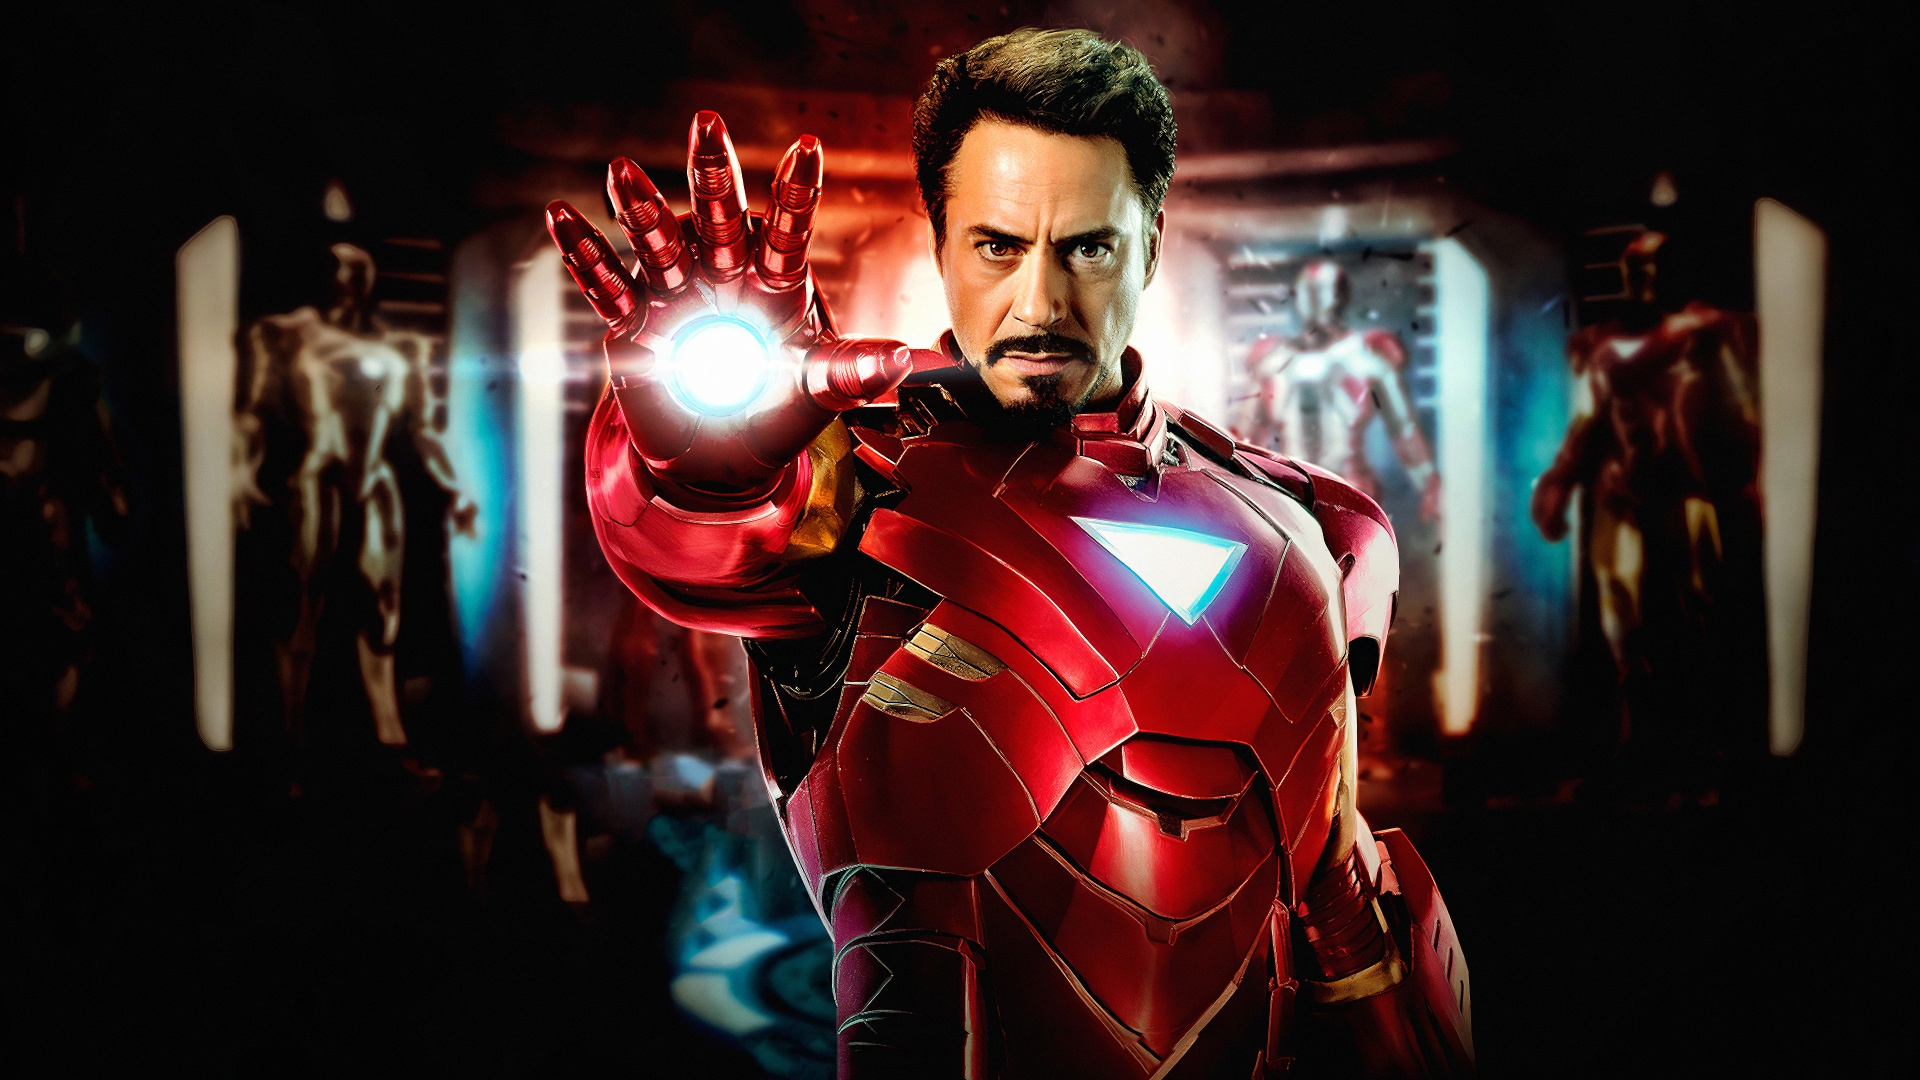 images of iron man